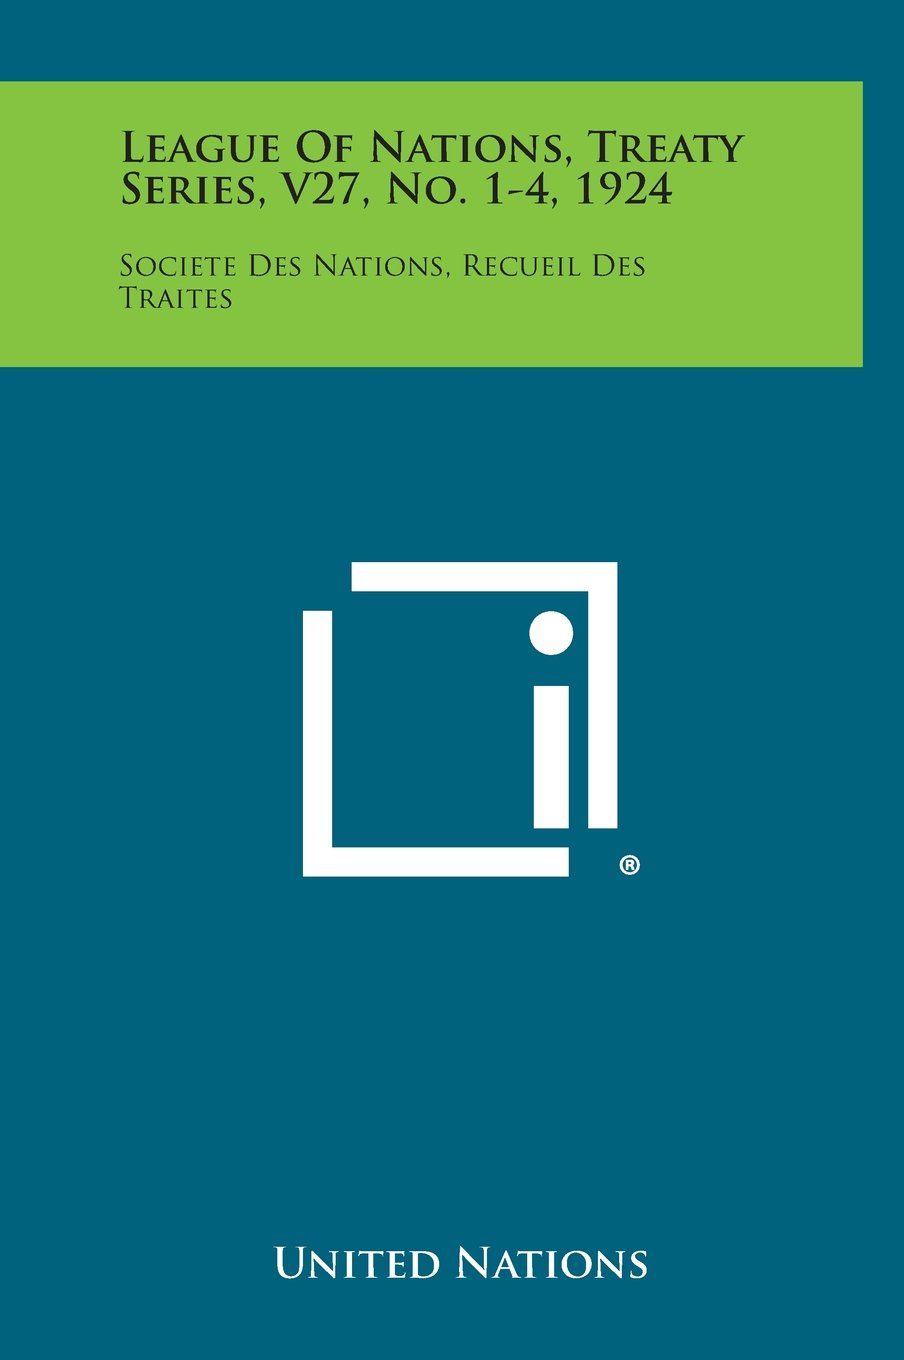 Download League of Nations, Treaty Series, V27, No. 1-4, 1924: Societe Des Nations, Recueil Des Traites PDF